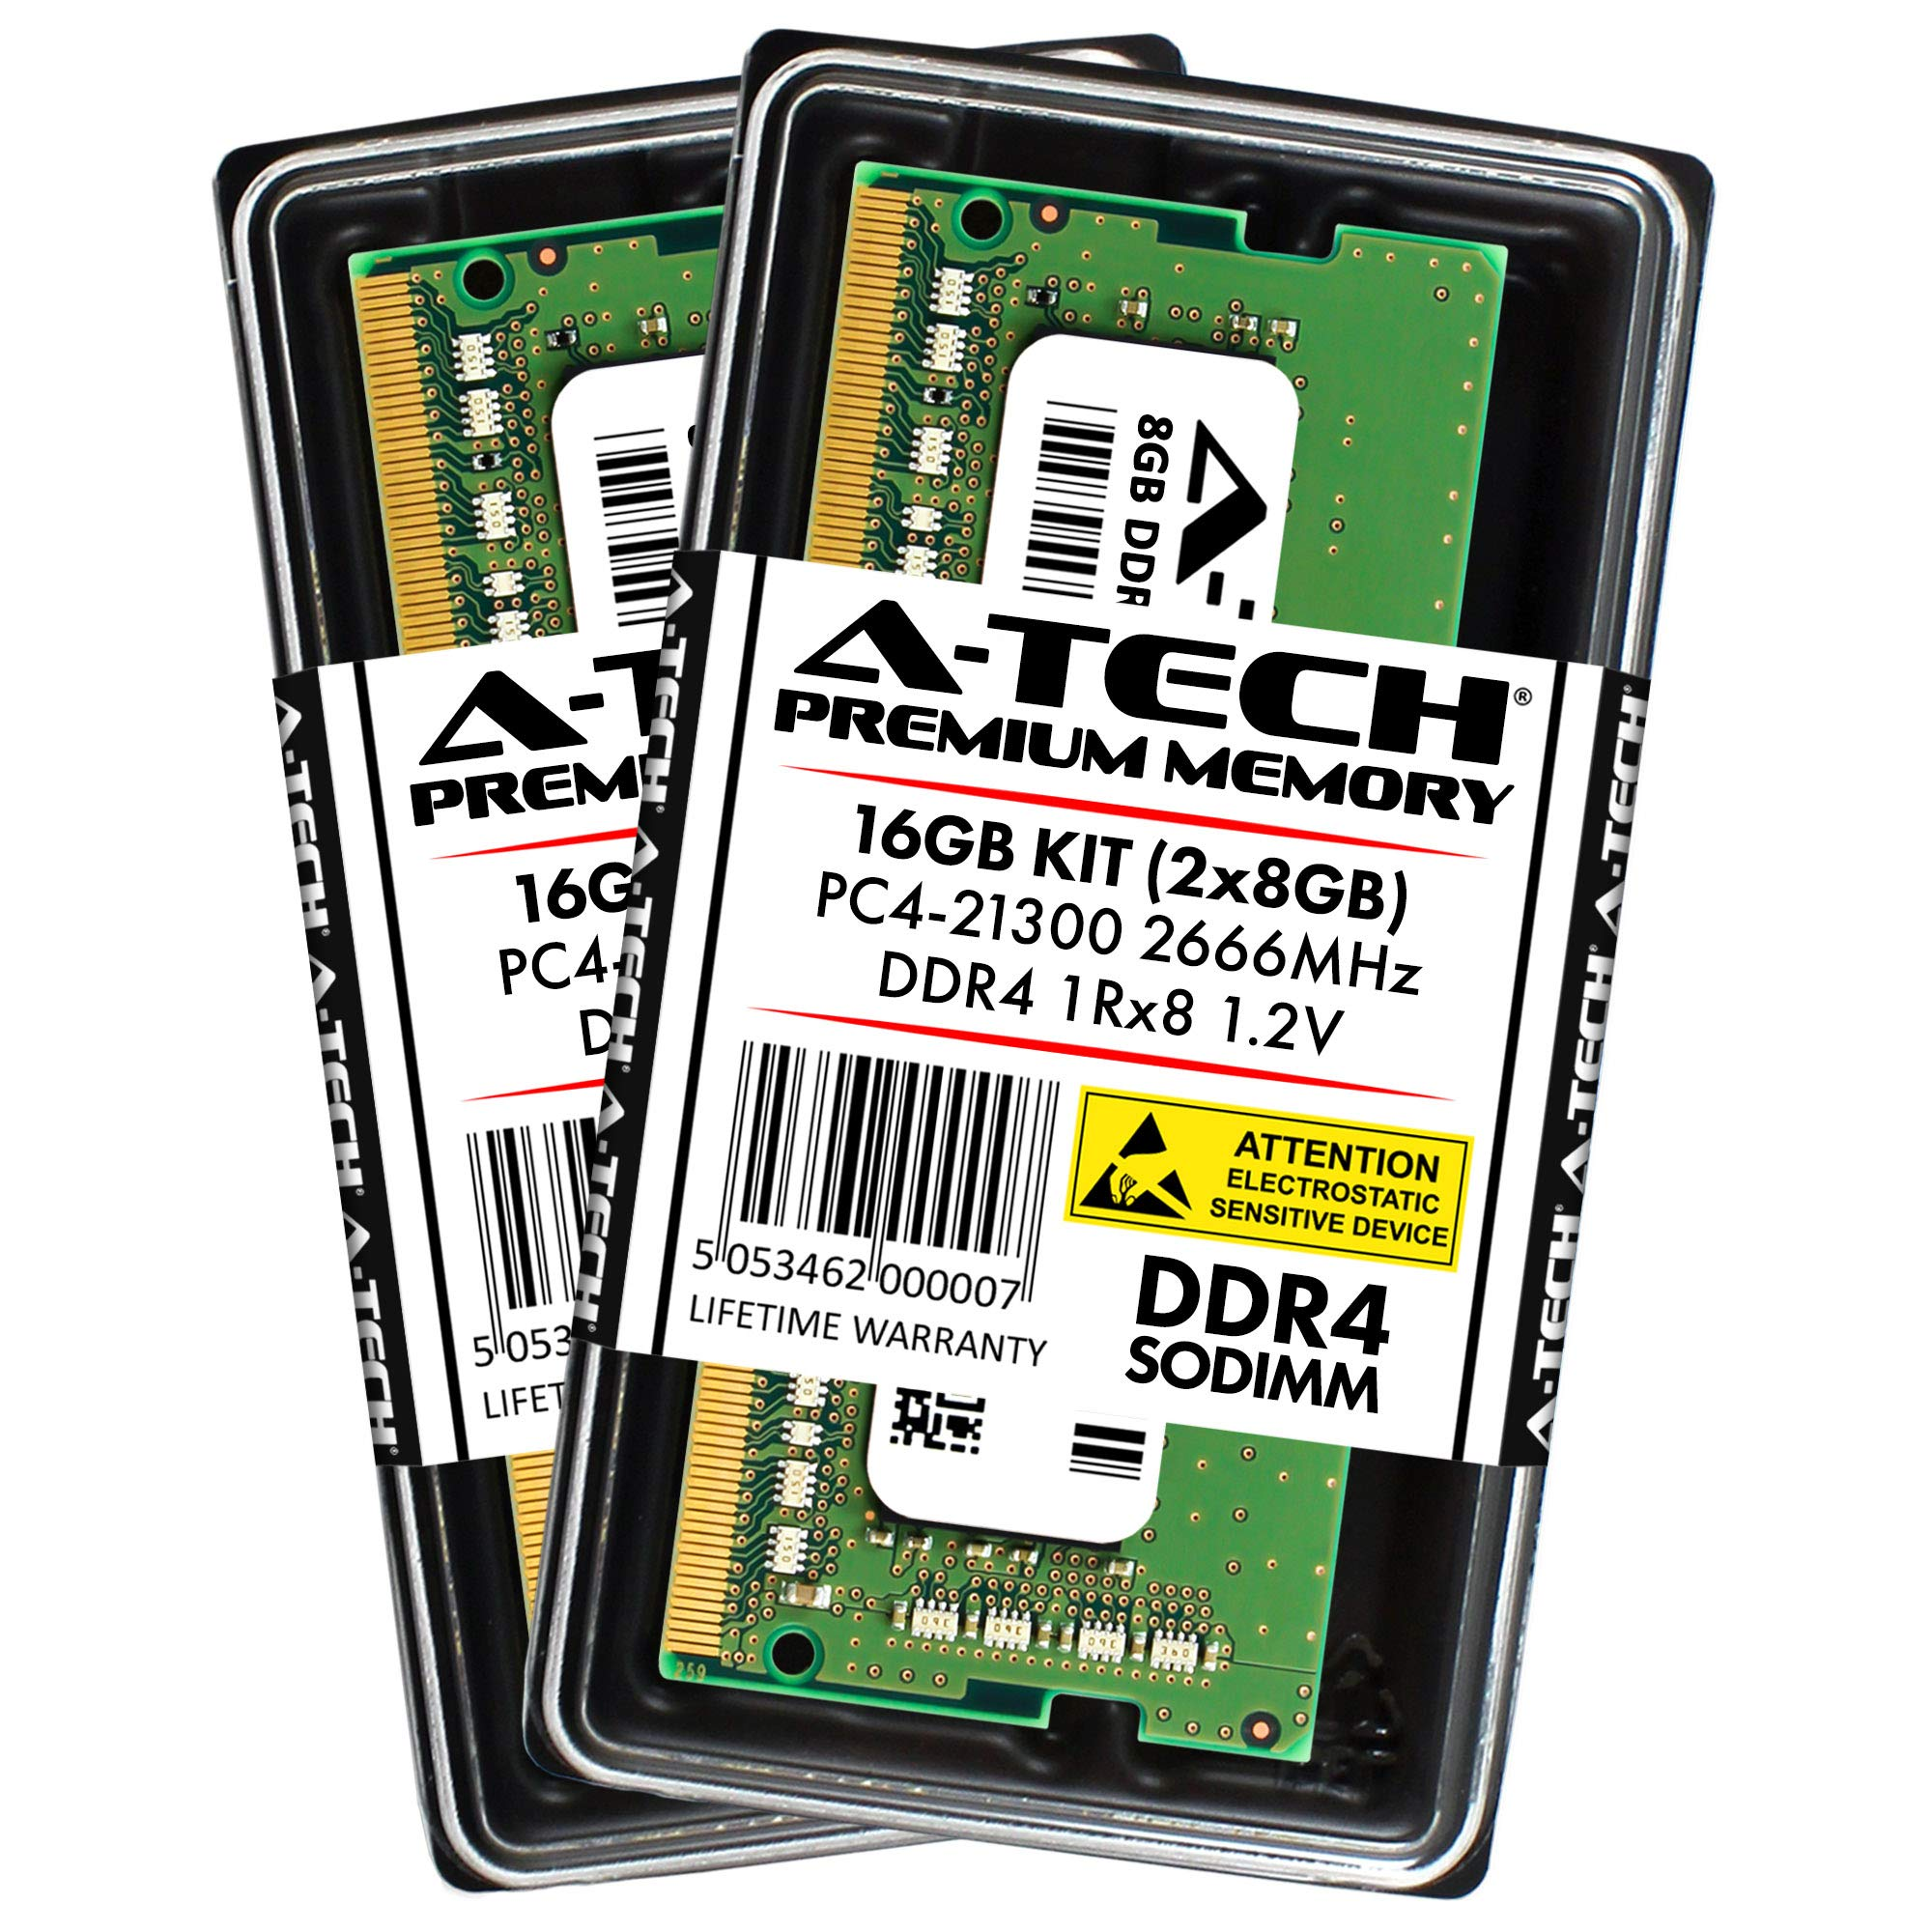 Memoria Ram 16GB A-Tech DDR4 2666MHz Kit (2 x 8GB) PC4-21300 Non-ECC Unbuffered SODIMM 260-Pin 1Rx8 1.2V Single R